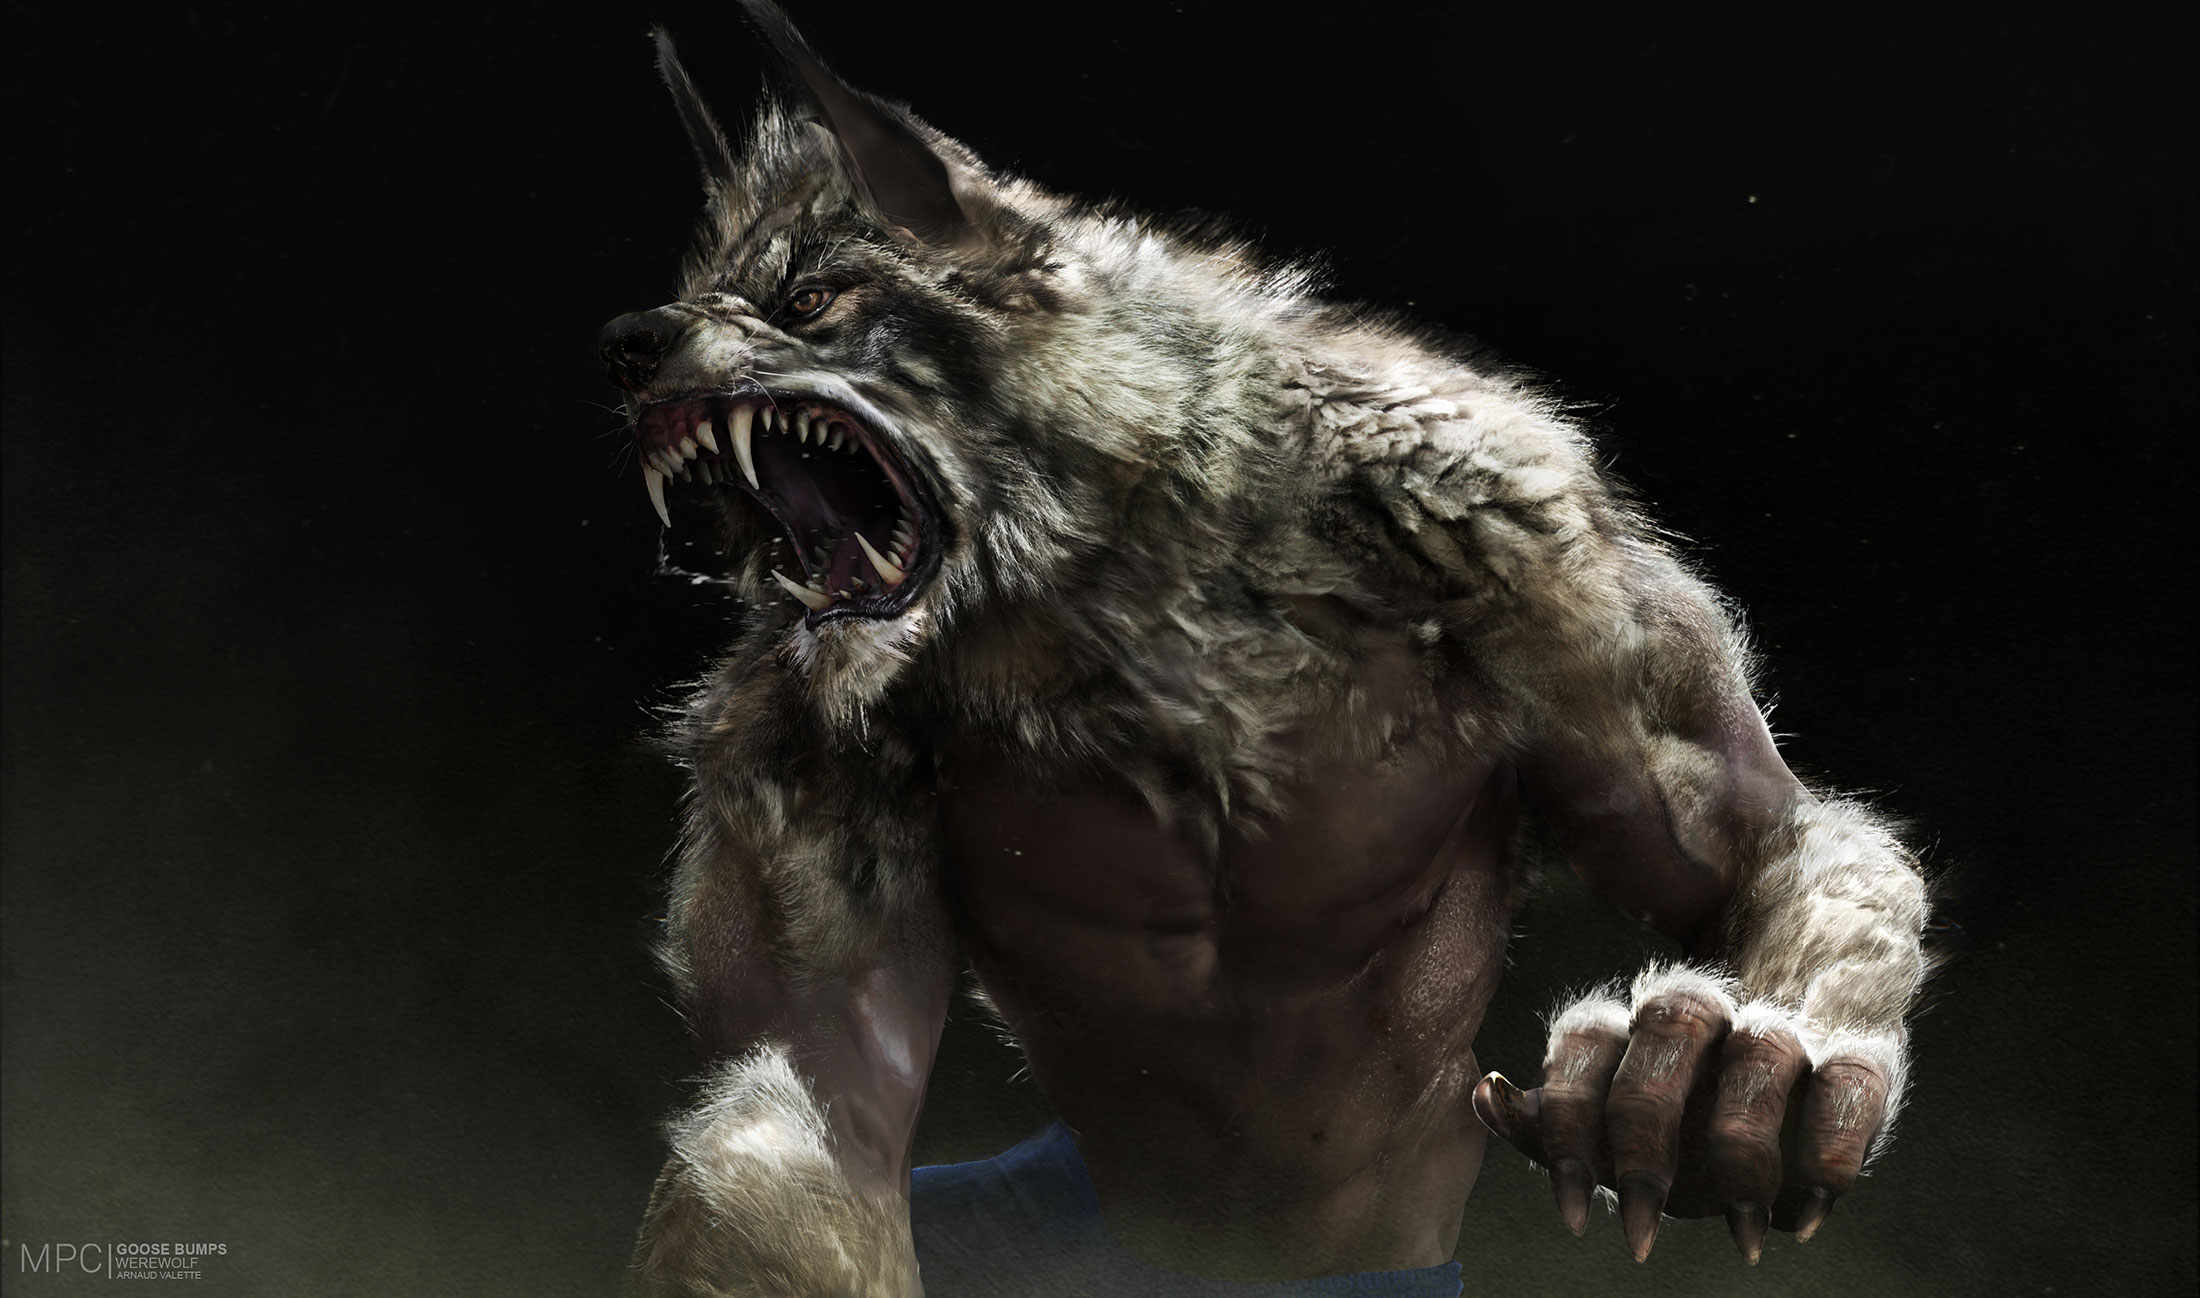 GB_Look_Werewolf_08.1001